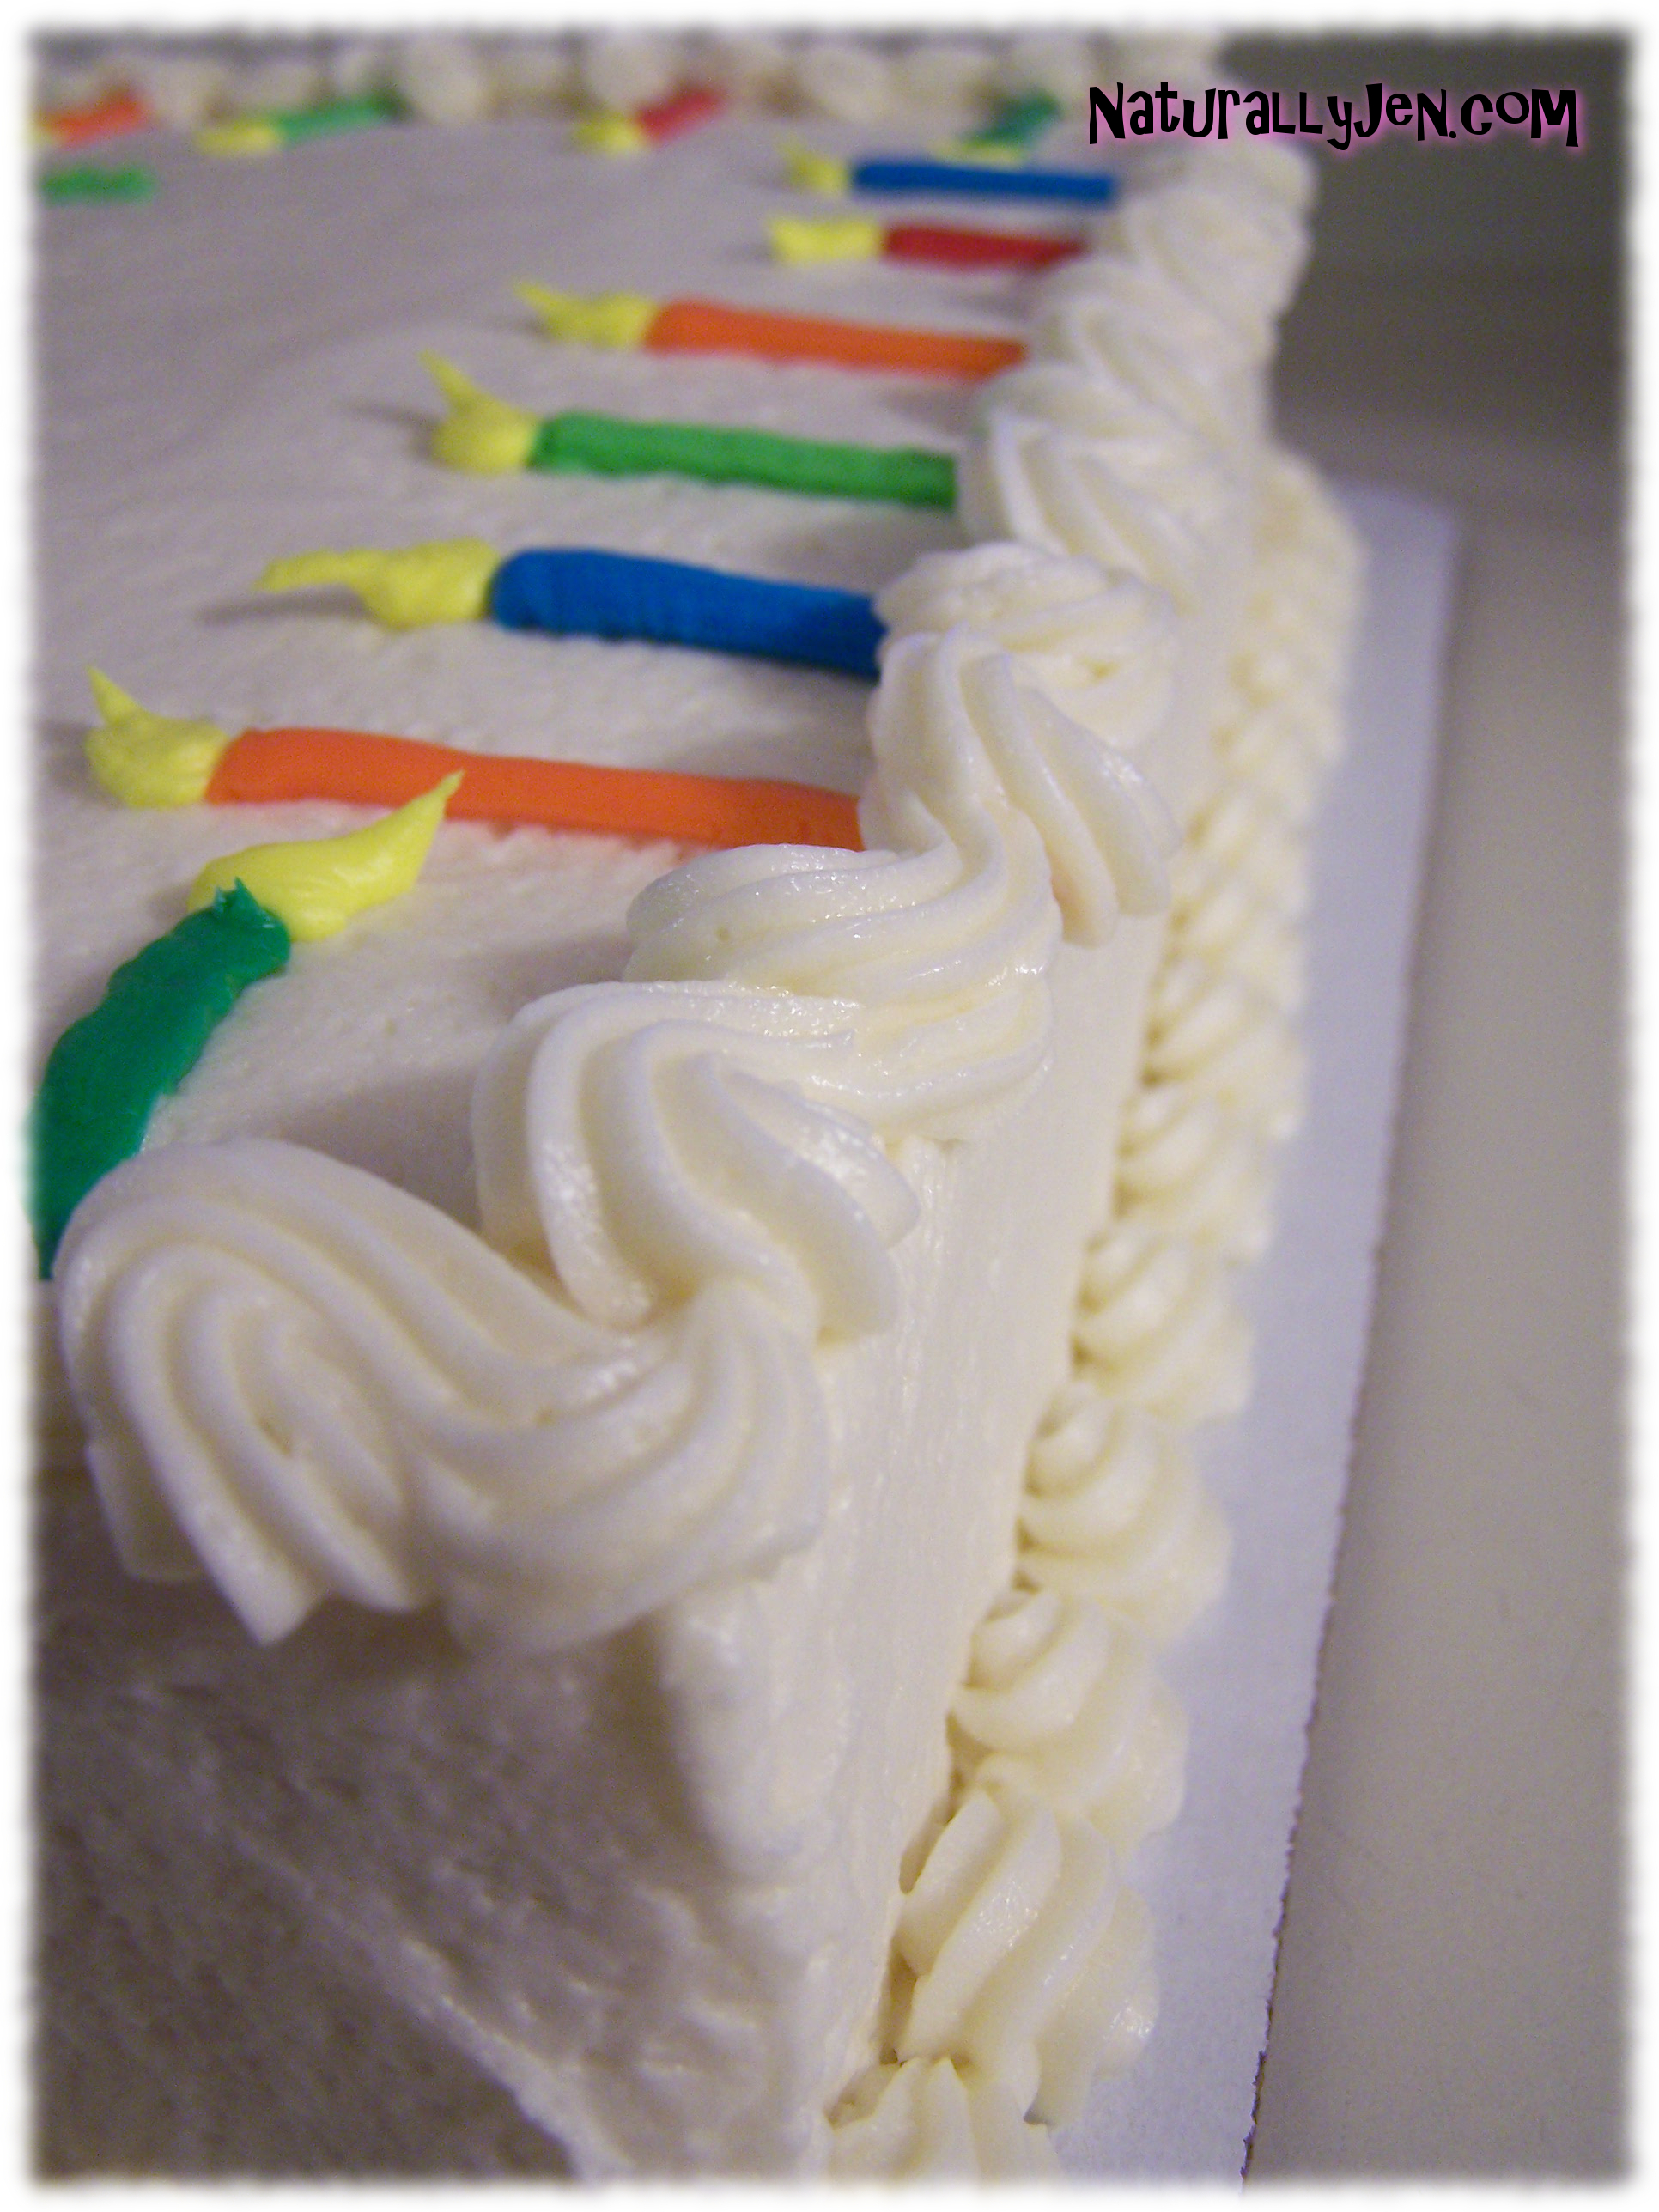 Thirtieth Birthday Cake Decorating Ideas 30 frosting candles